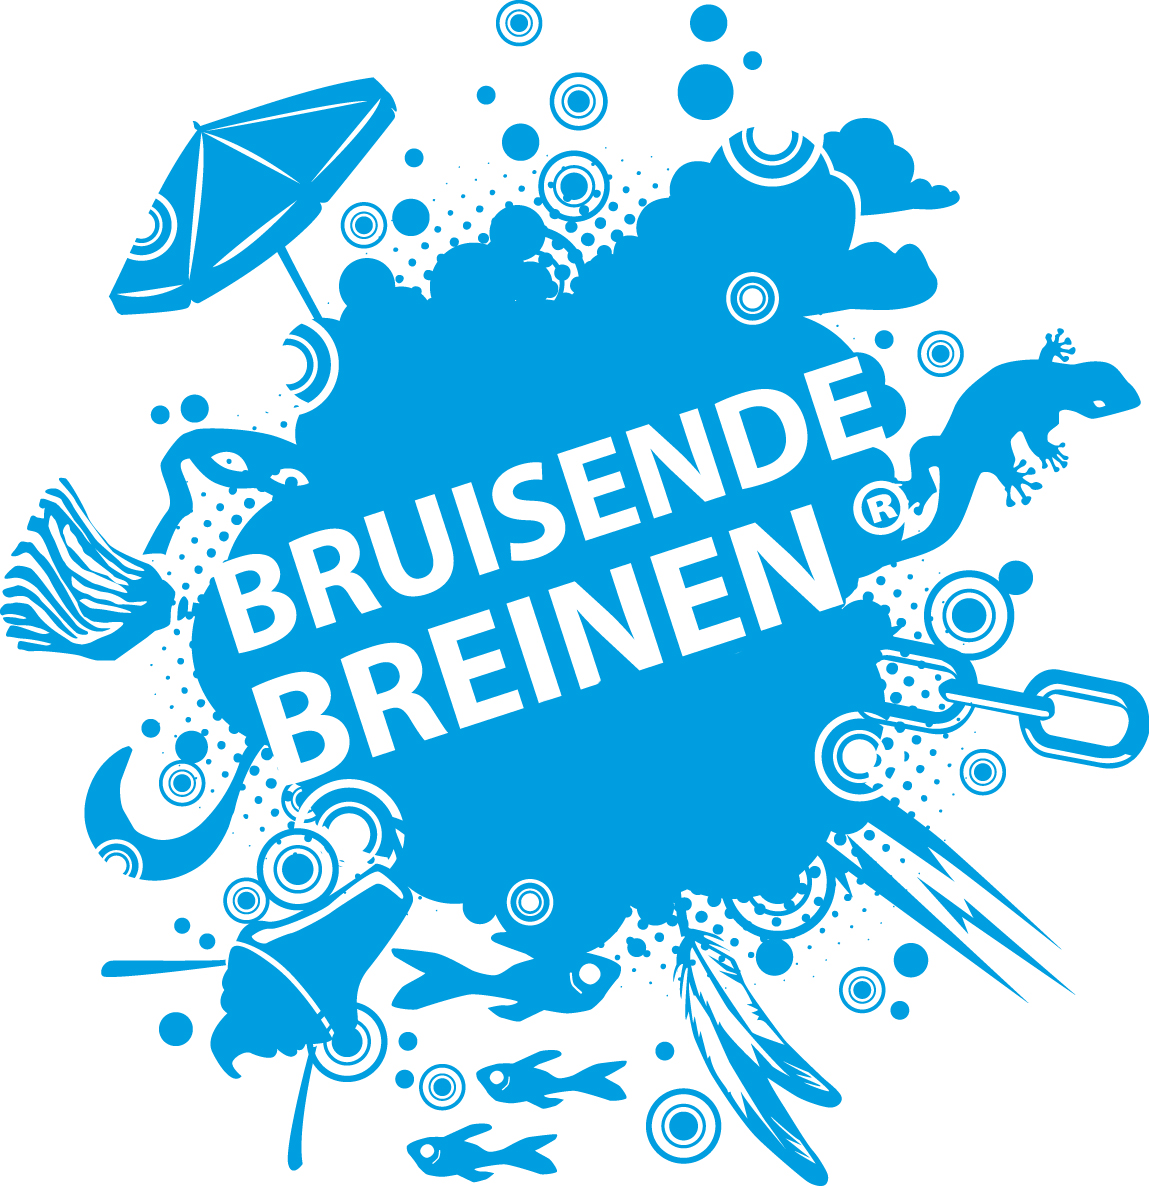 Bruisende Breinen ® workshops & brainstorms